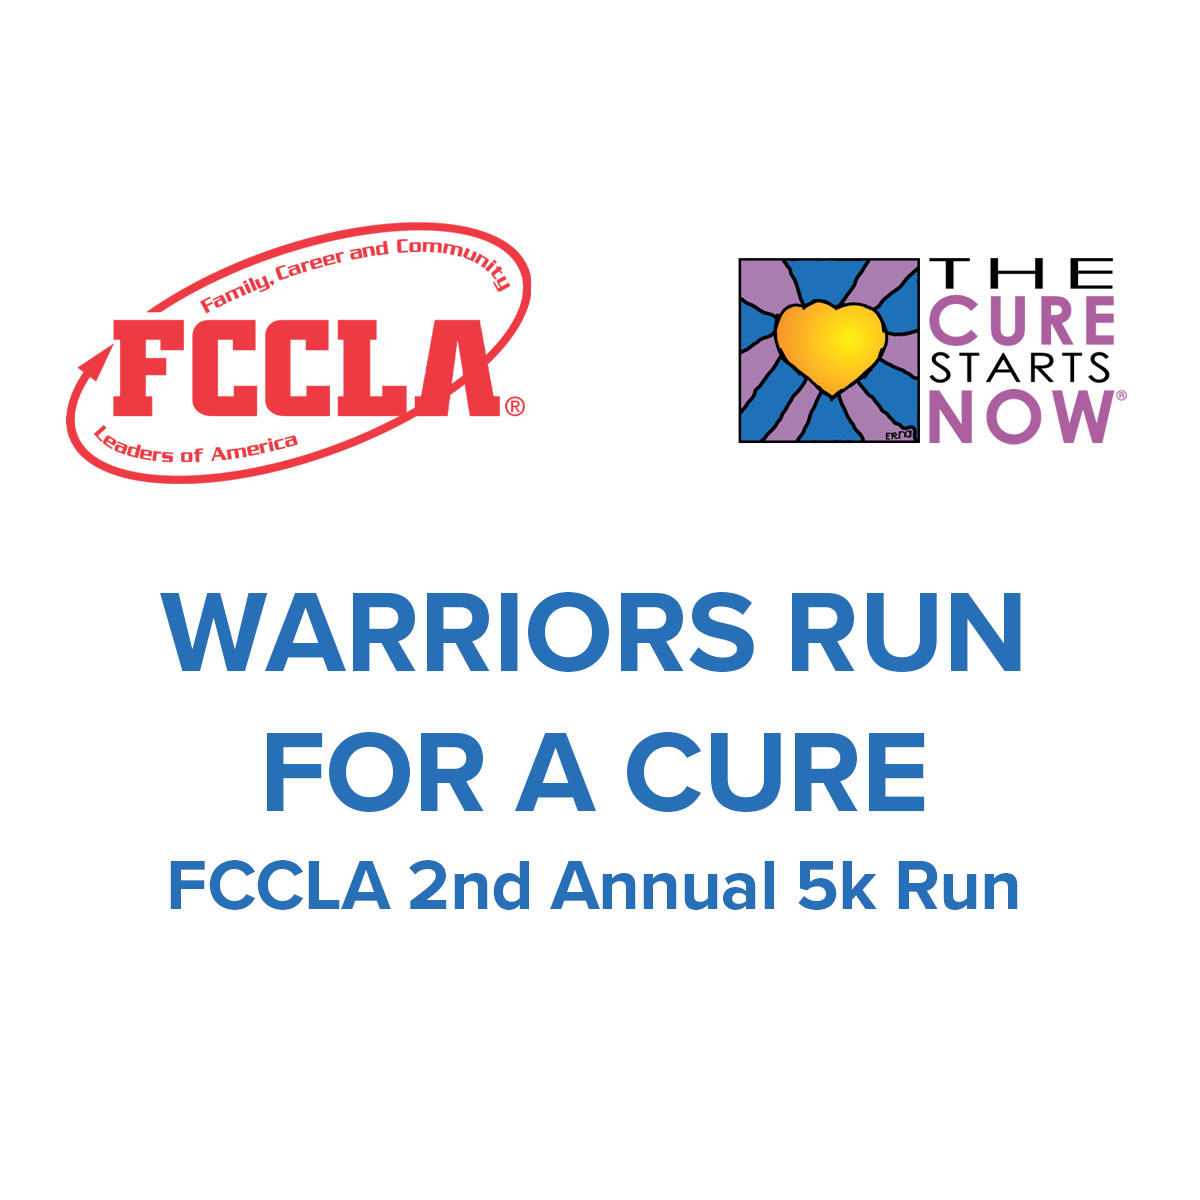 Warriors Run for a Cure FCCLA 5K Run 2019